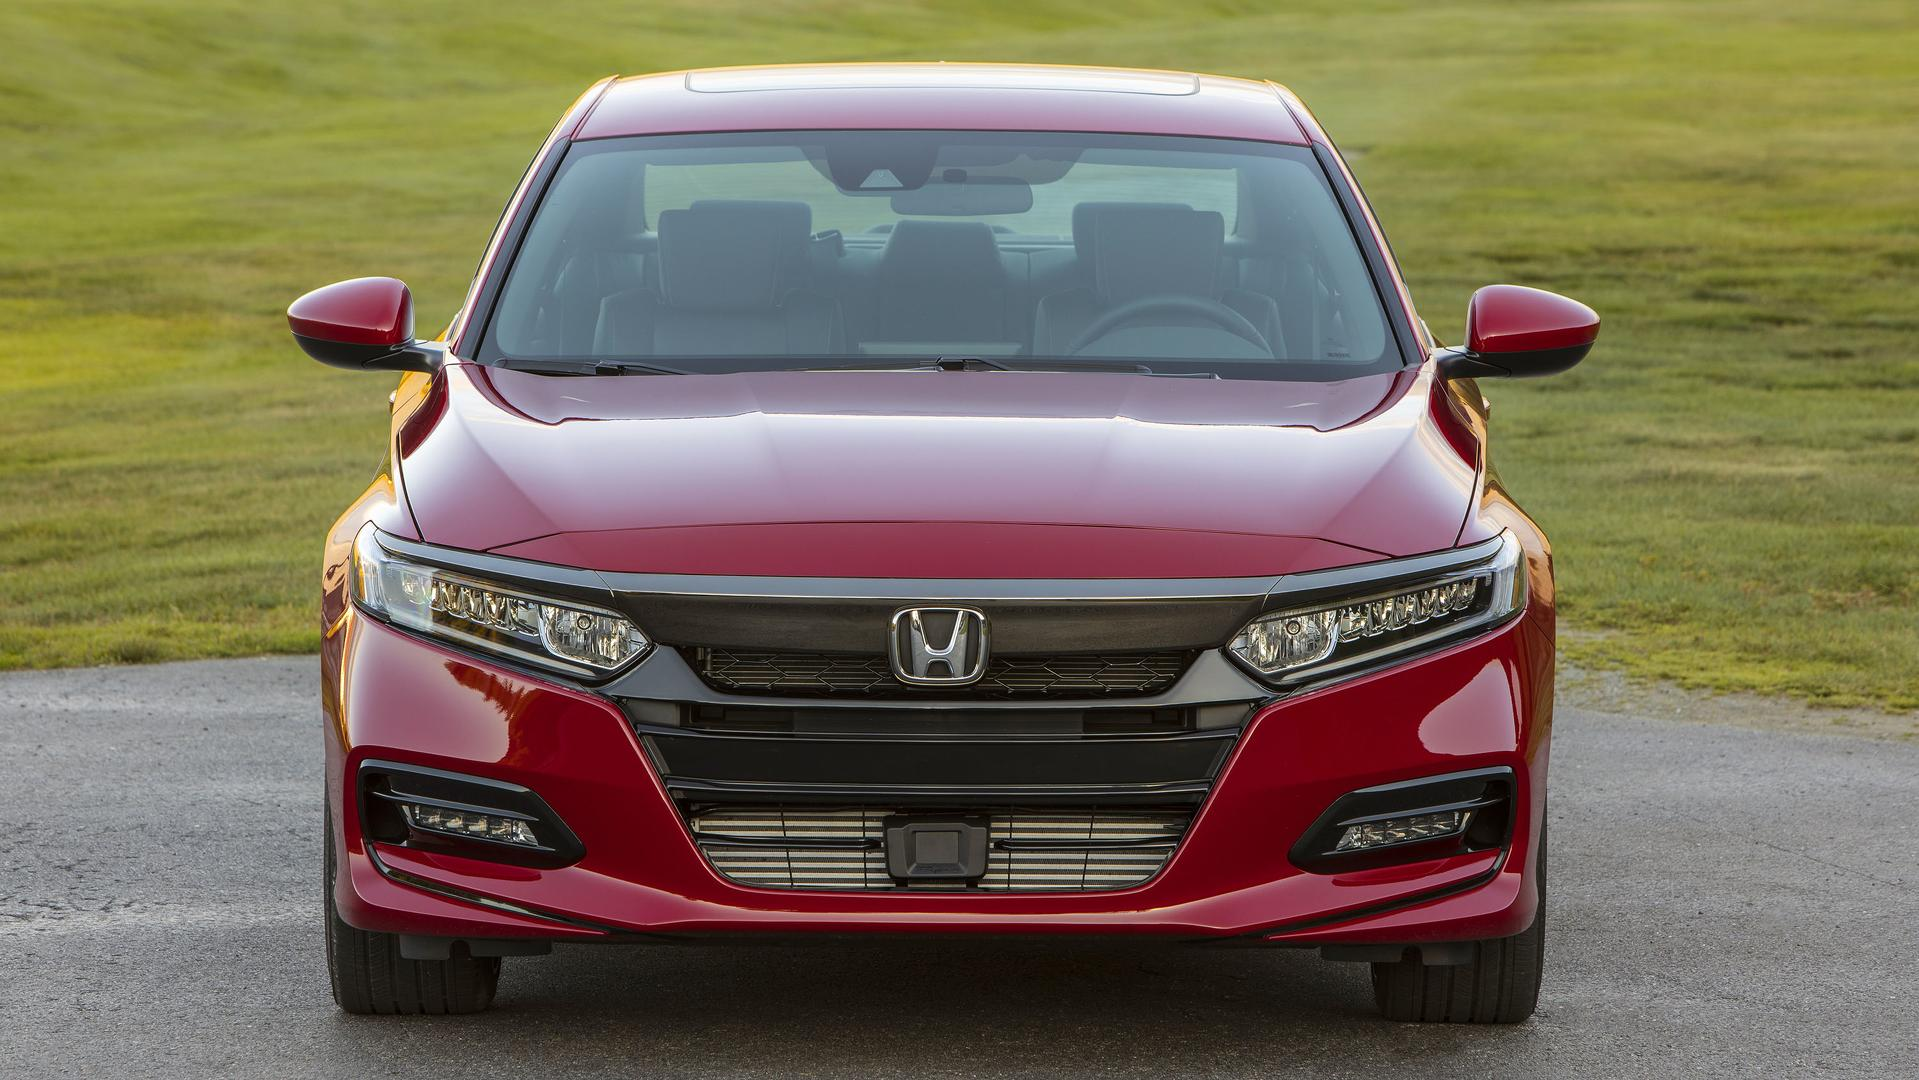 drive lease honda incentives new trim front vehicles overview plug select intermediate automatic a wheel hybrid img clarity in